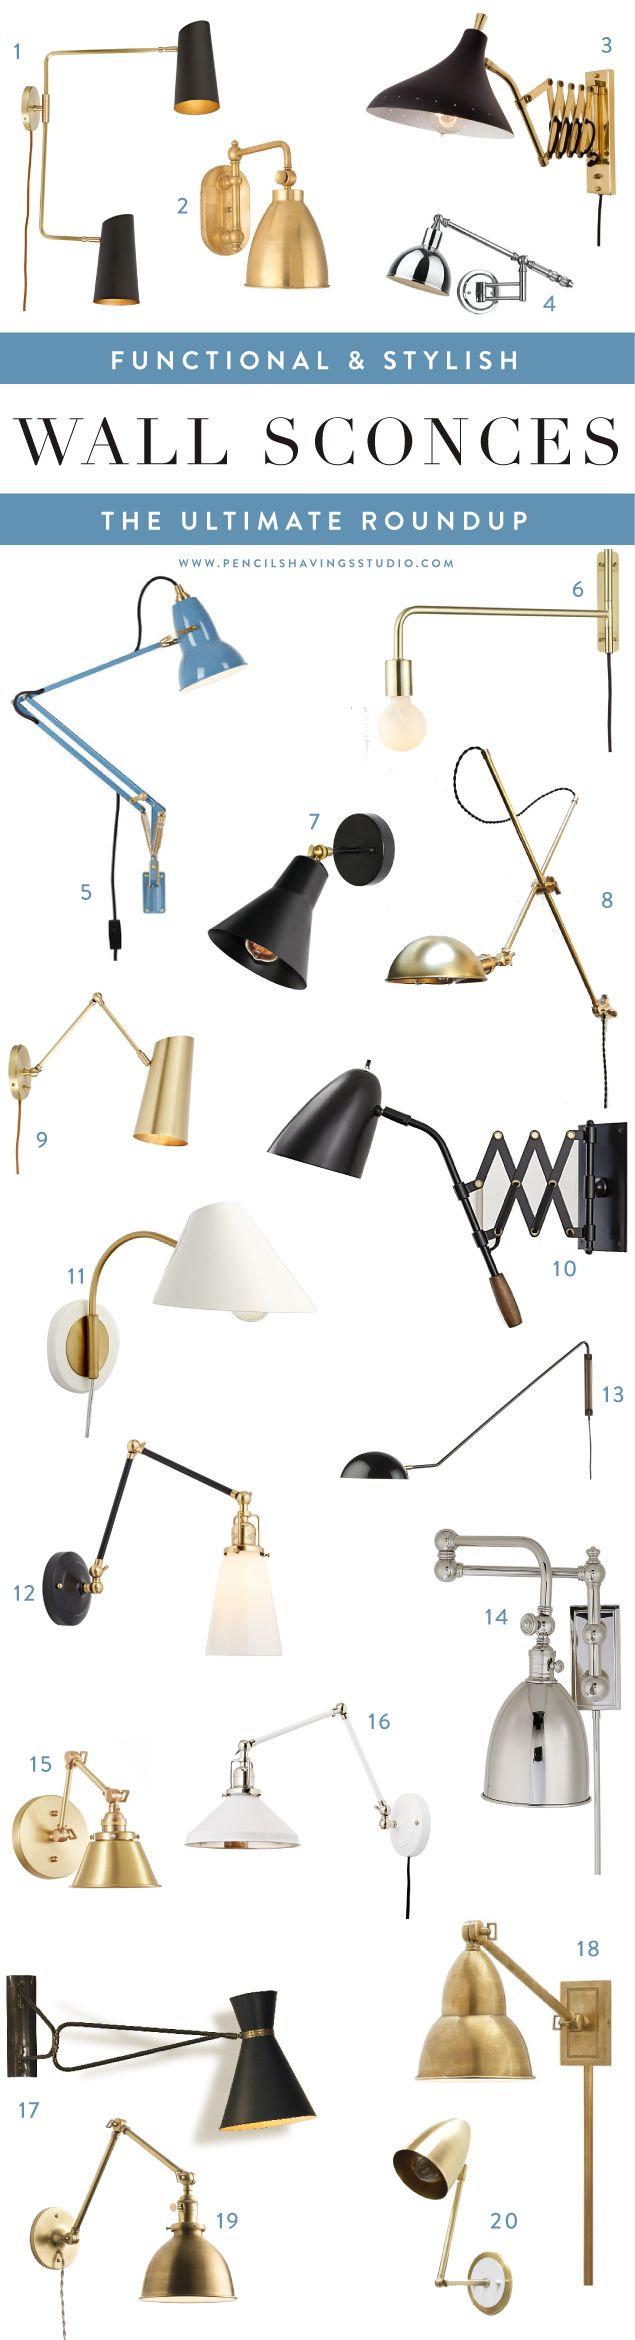 The best in articulating wall sconces, swing arm wall sconces, adjustable wall sconces and more - a roundup of all my favorite sconces in a variety of finishes including brass sconces, black sconces, industrial sconces and more. www.pencilshavingsstudio.com